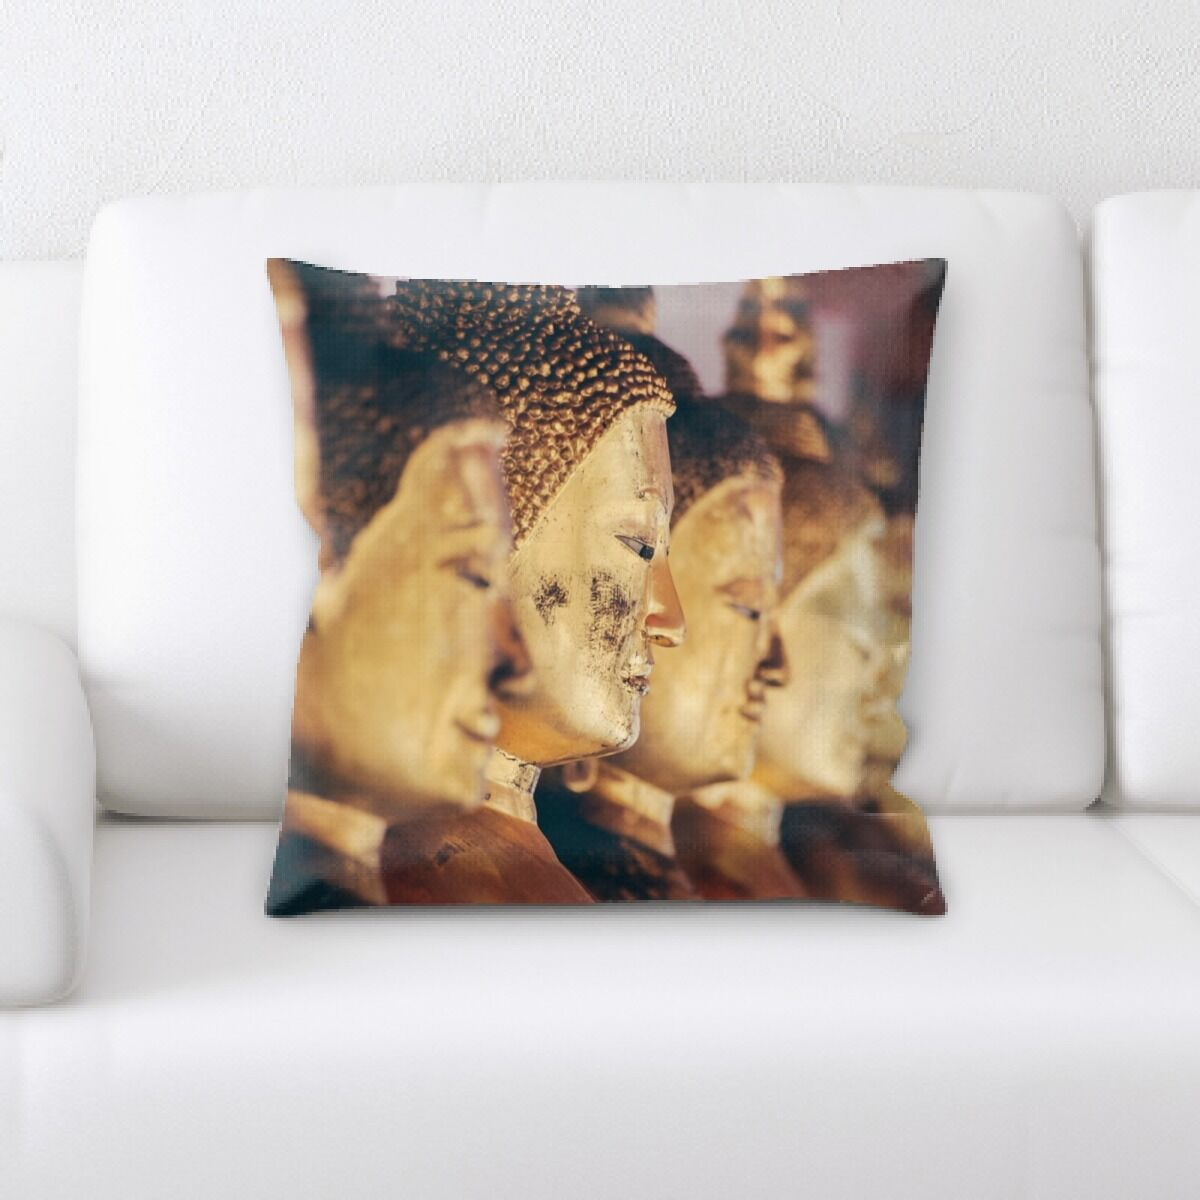 Booth Meditation and Calming Moments (9) Throw Pillow